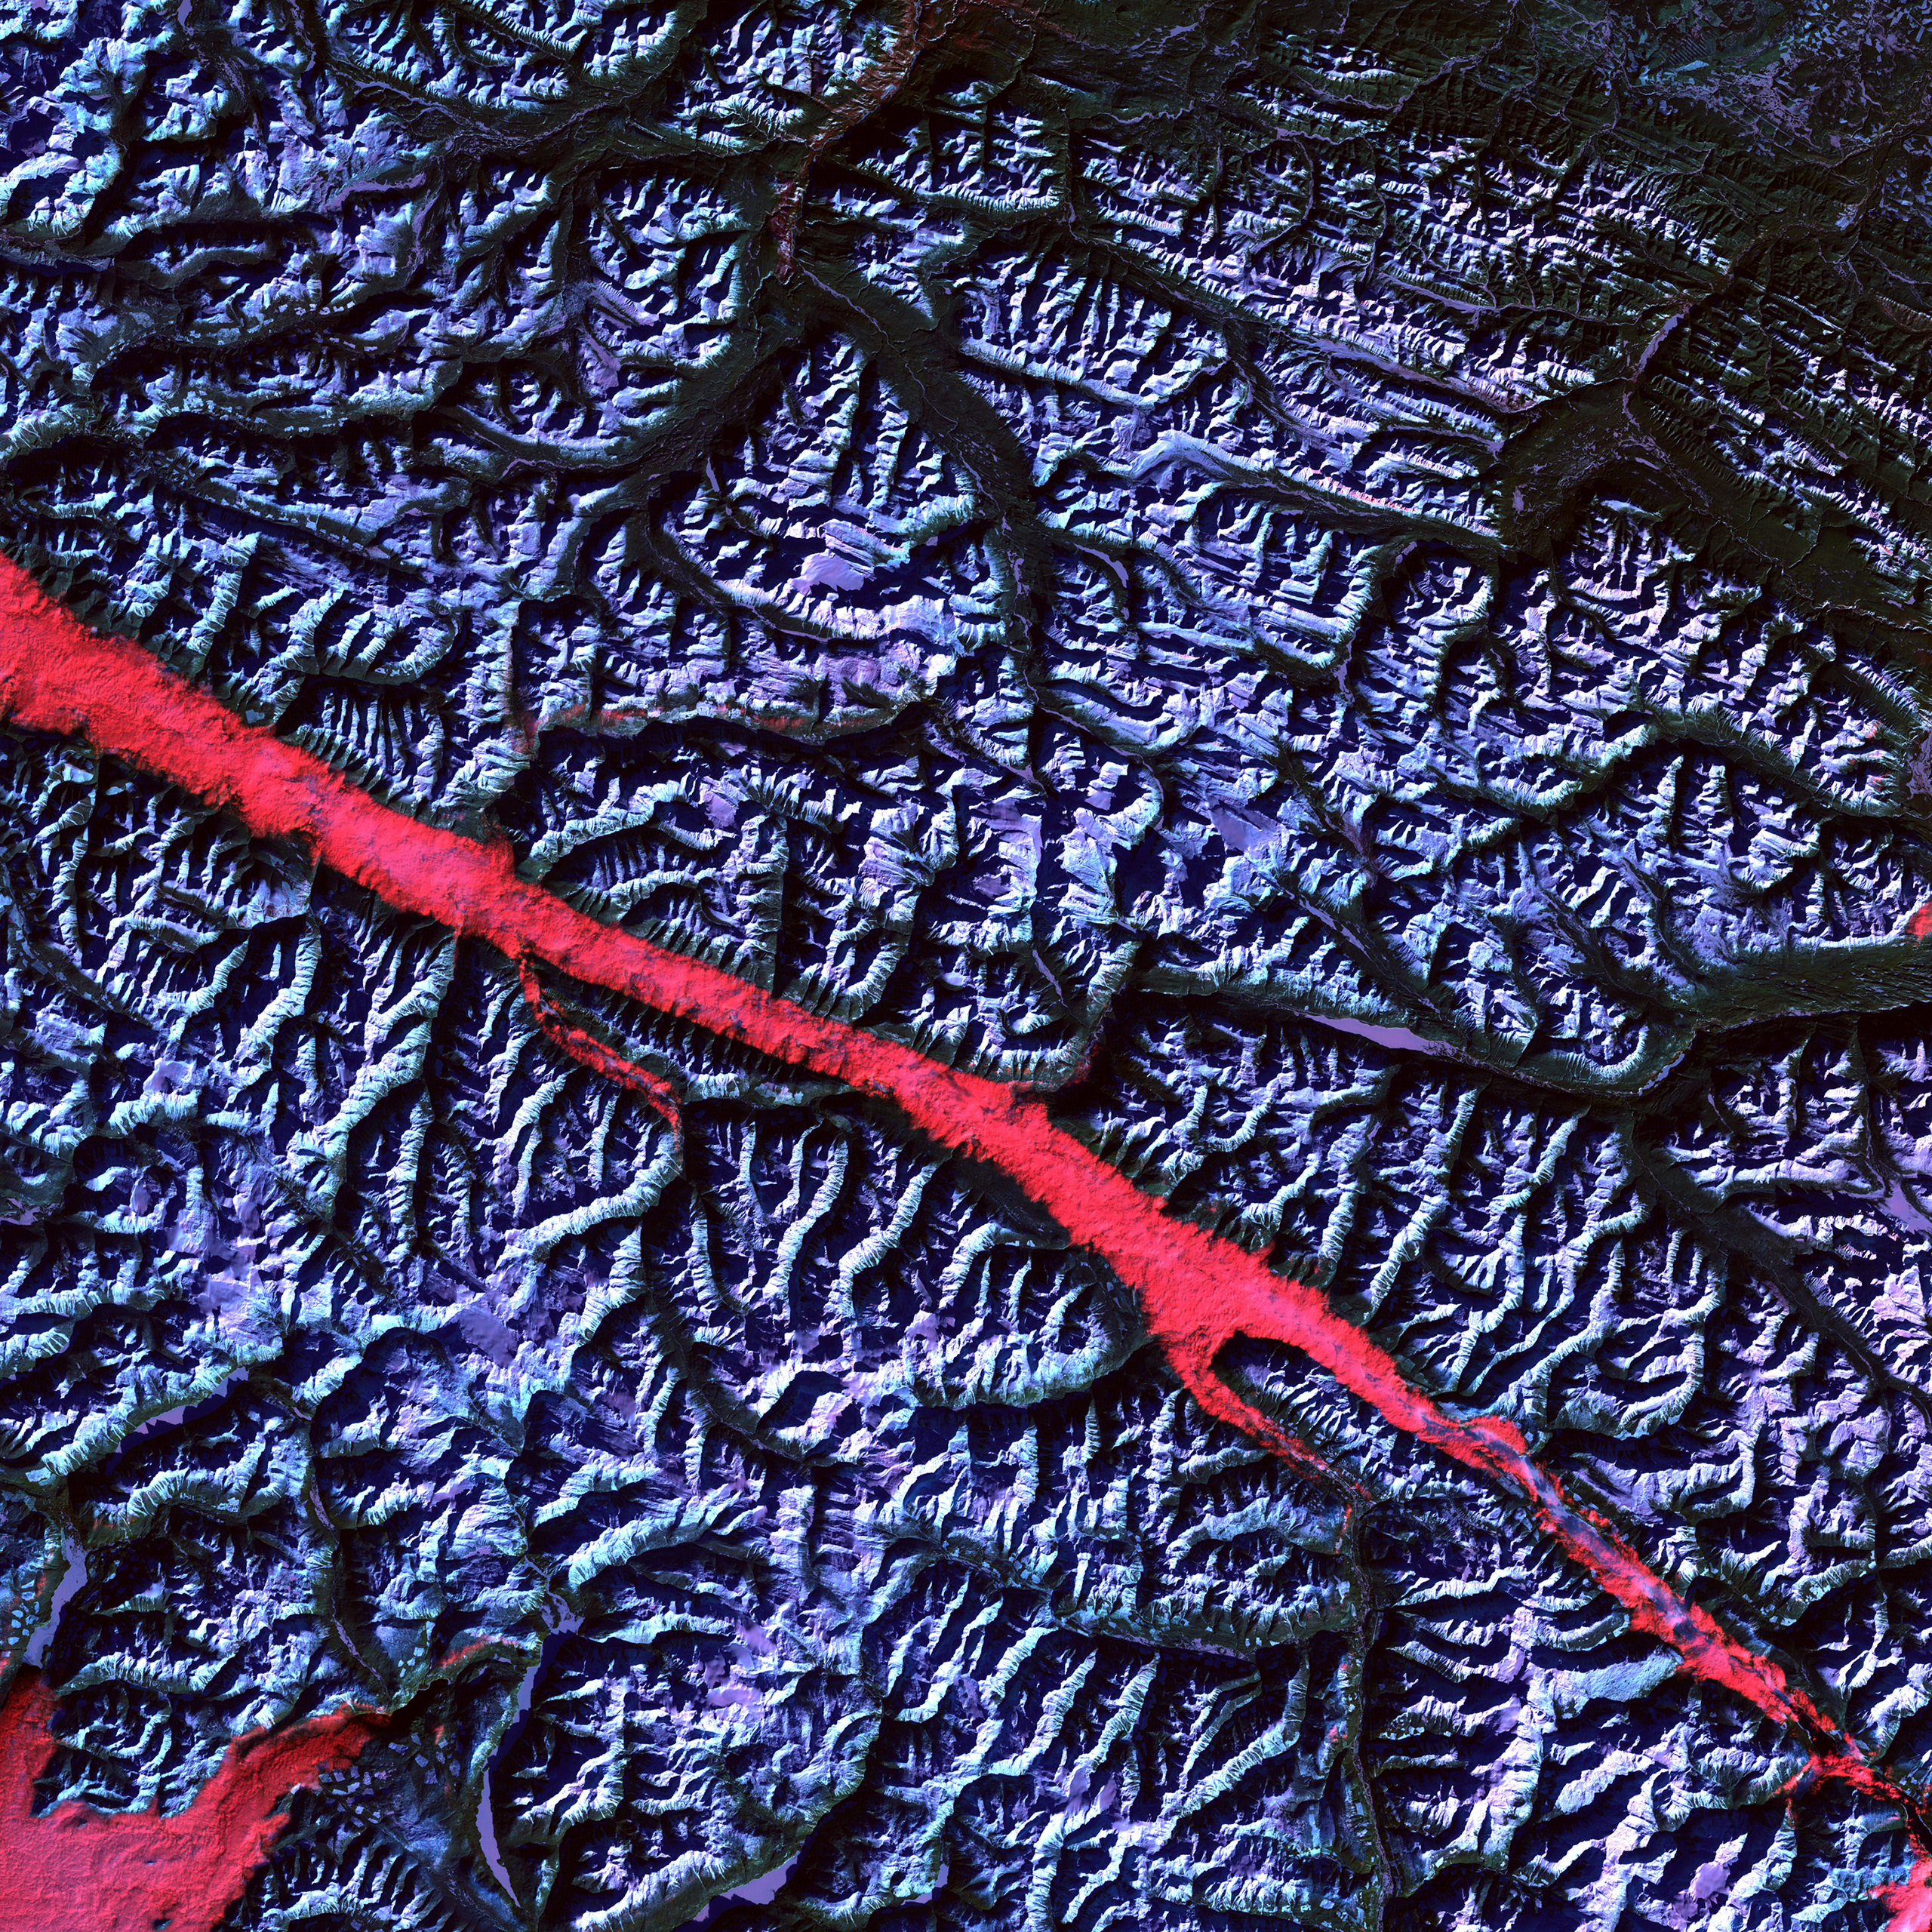 Rocky Mountain Trench, CanadaThe high reflectance of clouds compared to the surrounding land, coupled with the low sun elevation when this image was acquired, causes low clouds to appear red as they fill a portion of the trench. February 2004.